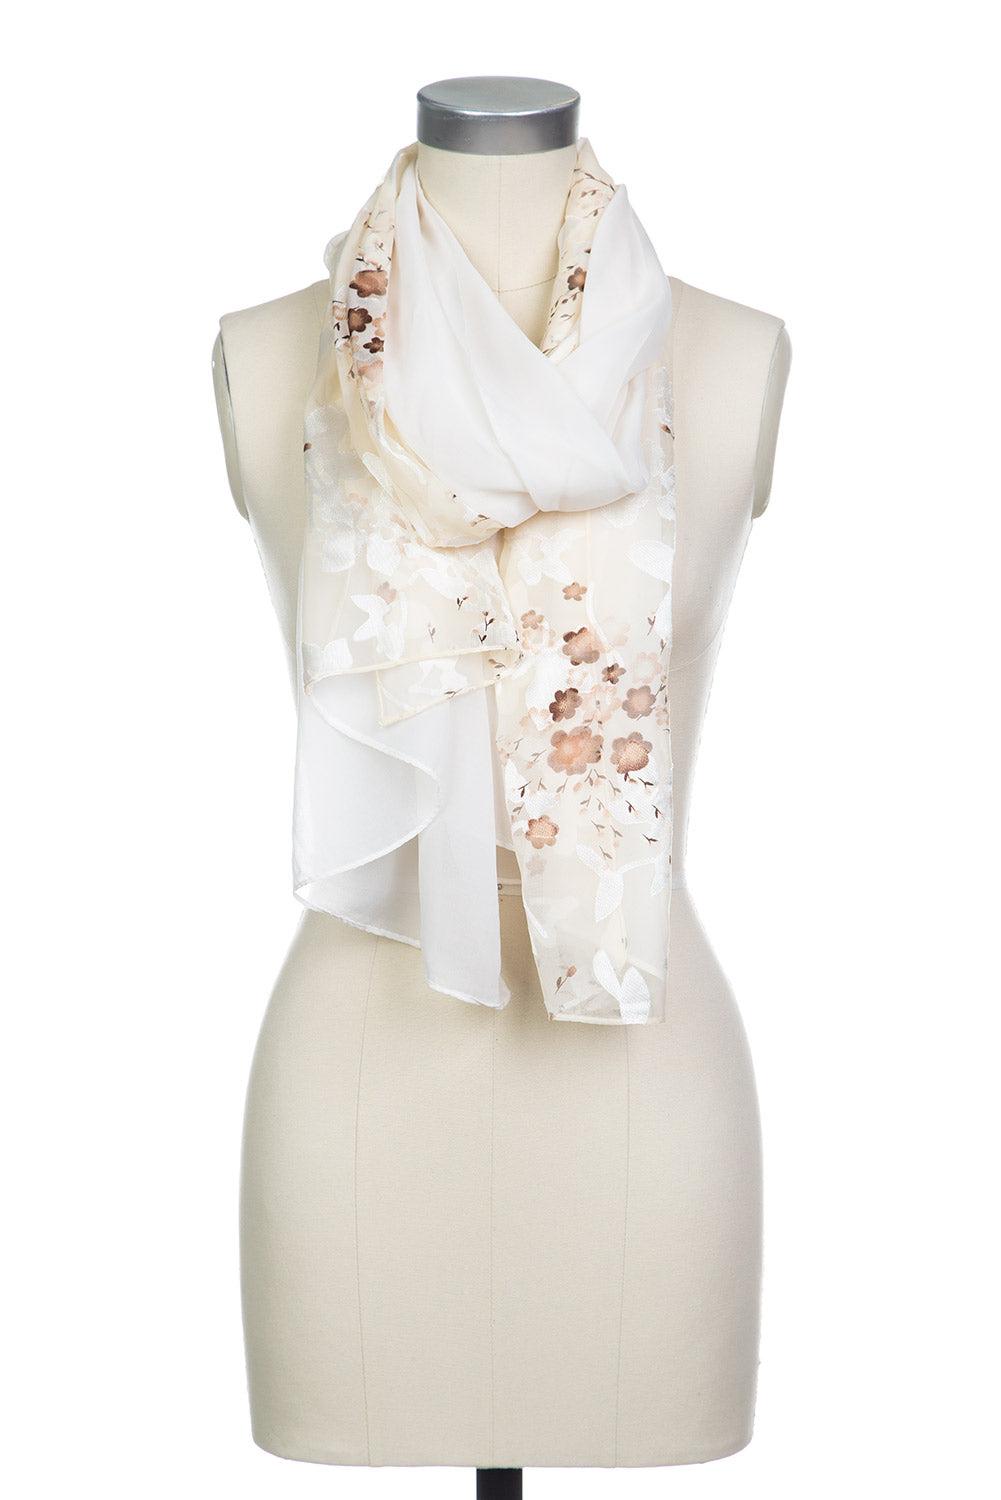 Type 2 Heavenly Scarf in Cream